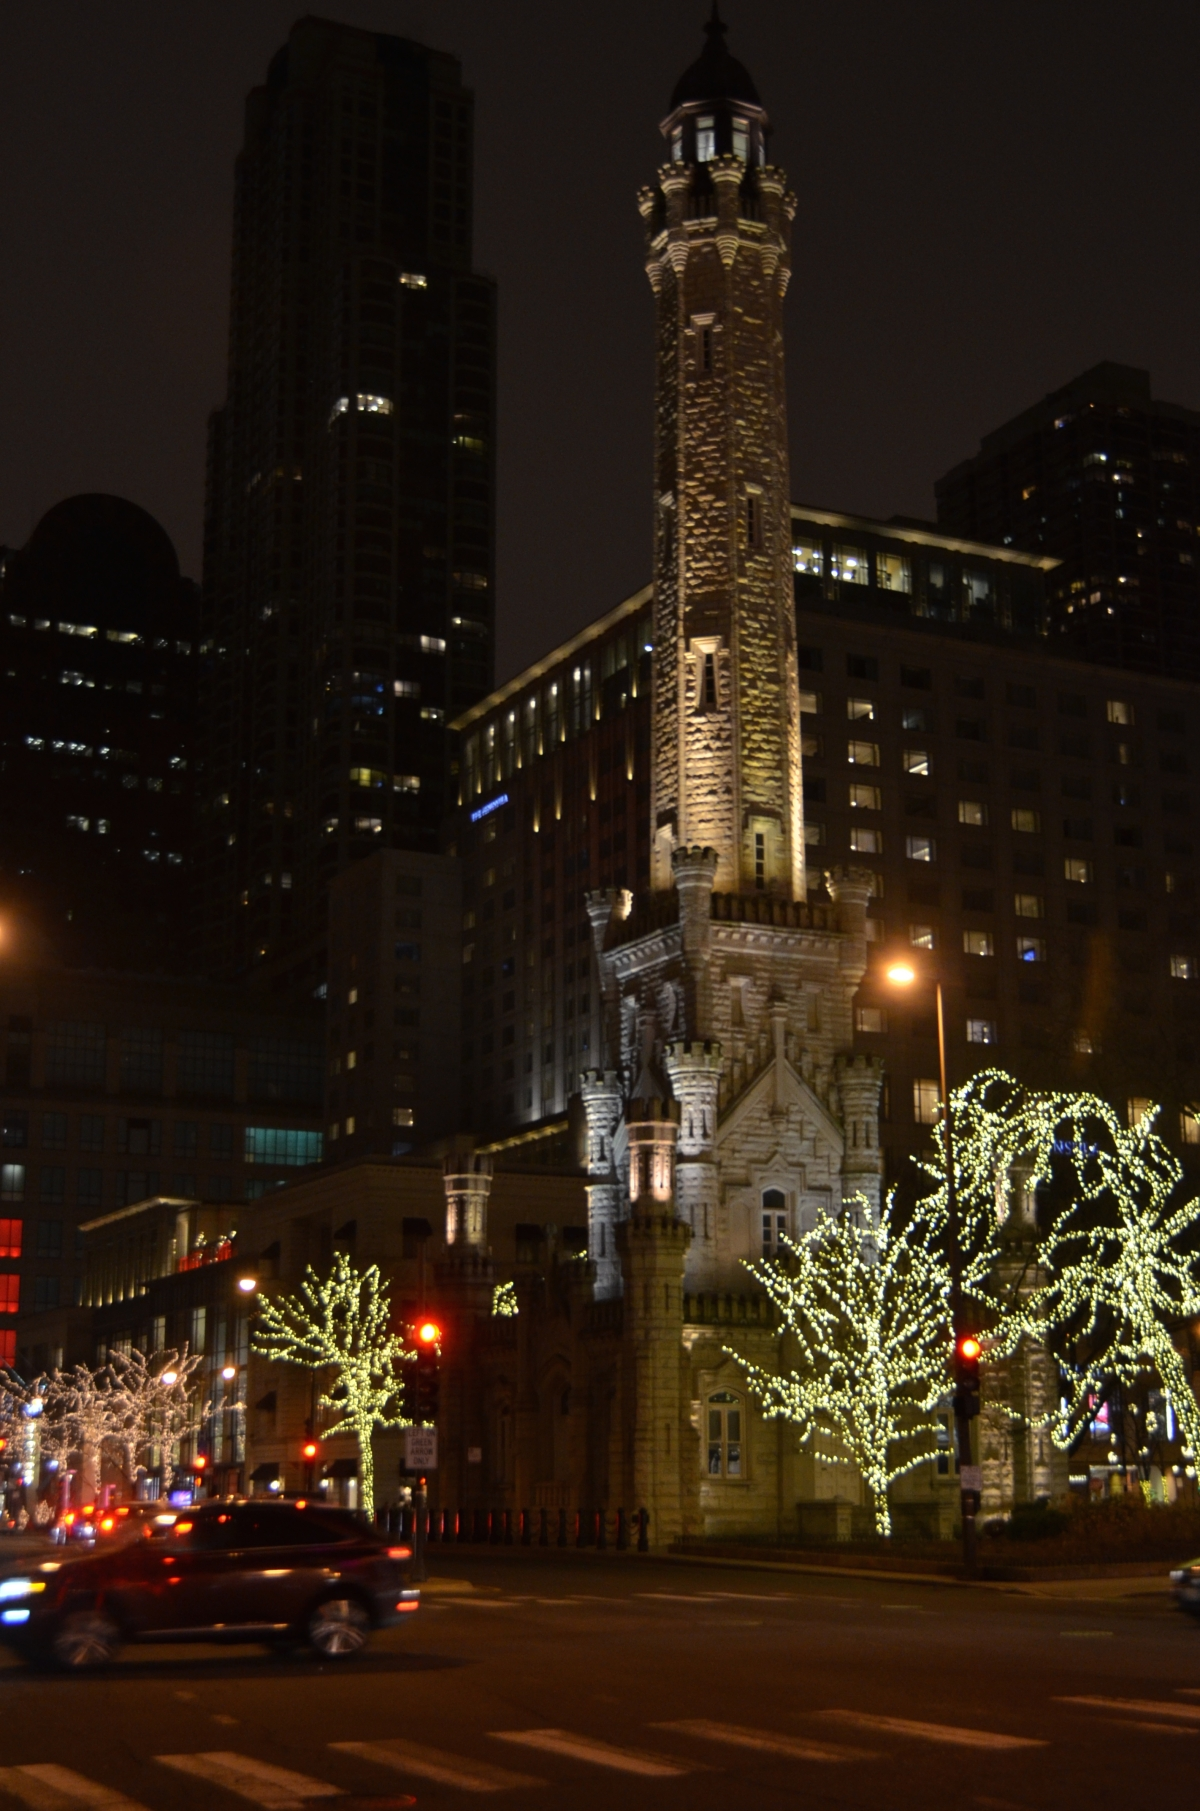 Chicago's famed Water Tower